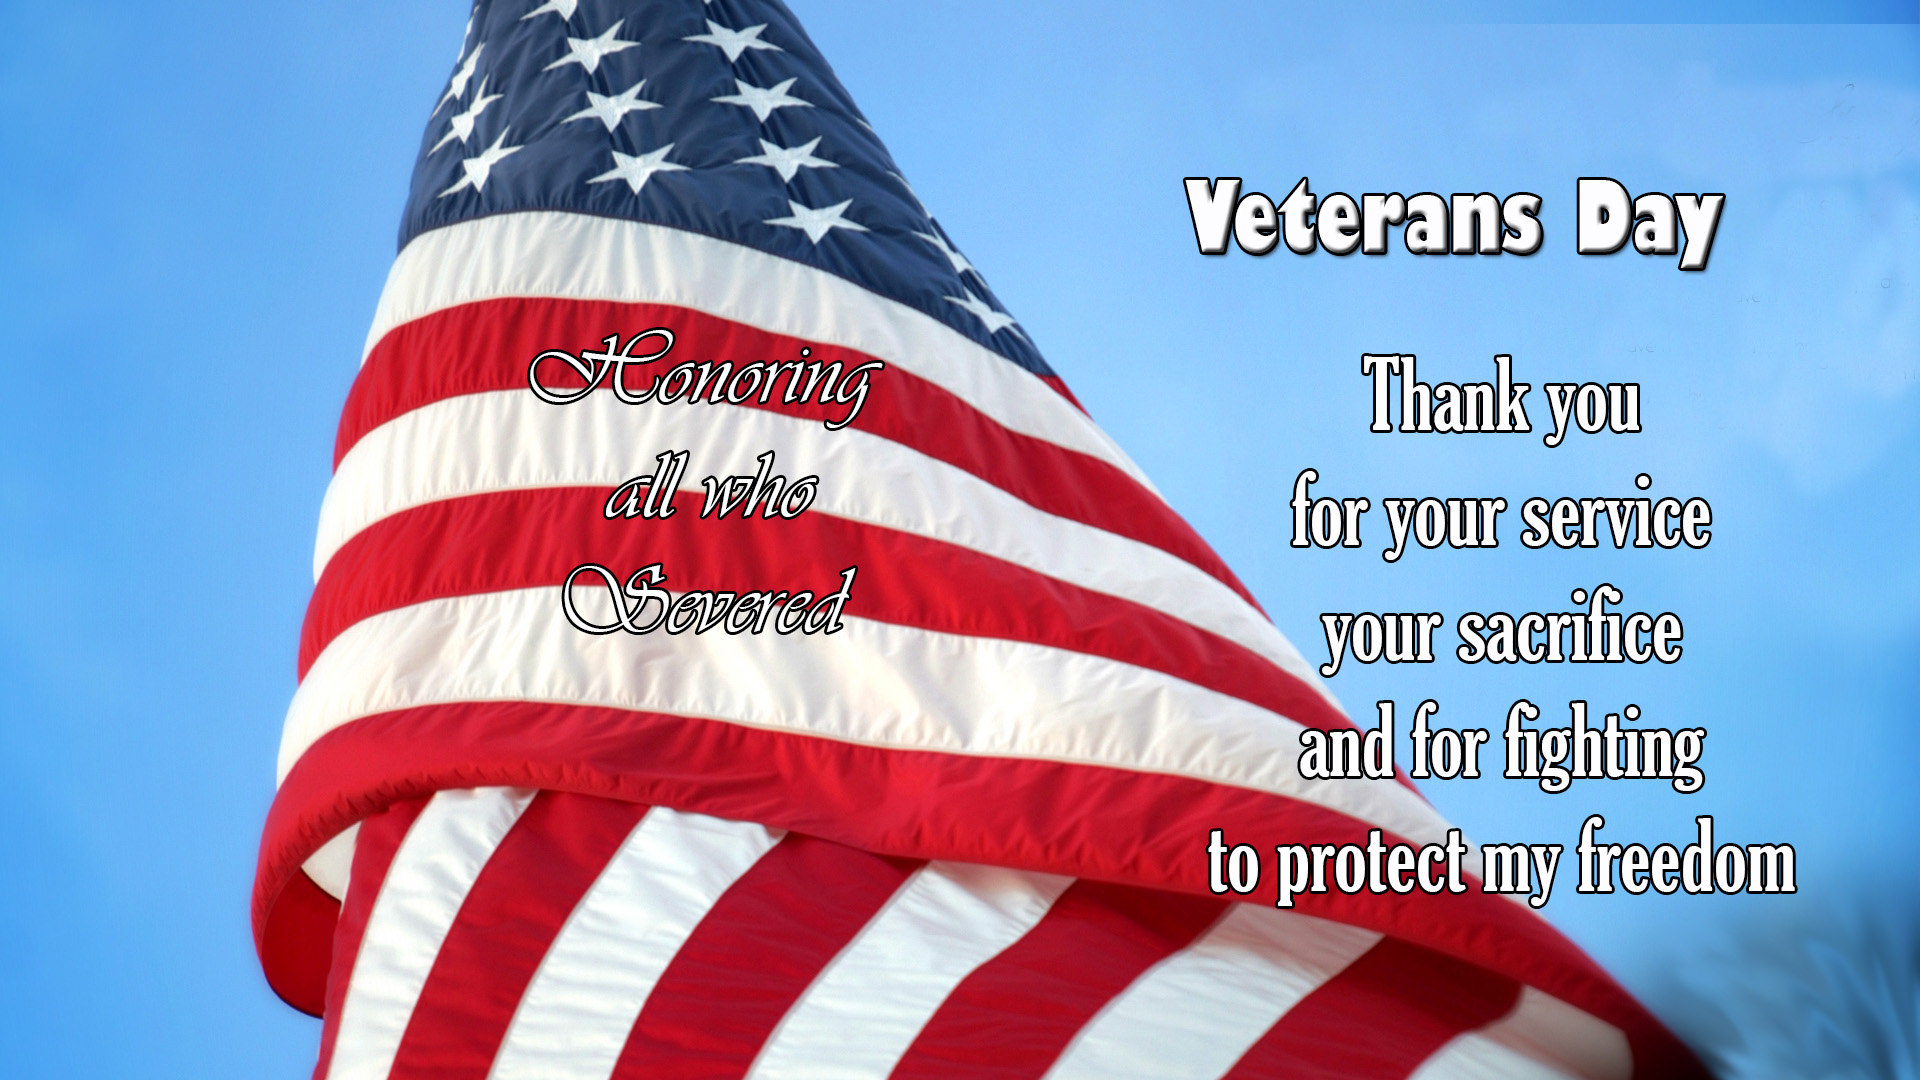 Veterans-Day-hd-Wallpaper-Images-cards-posters